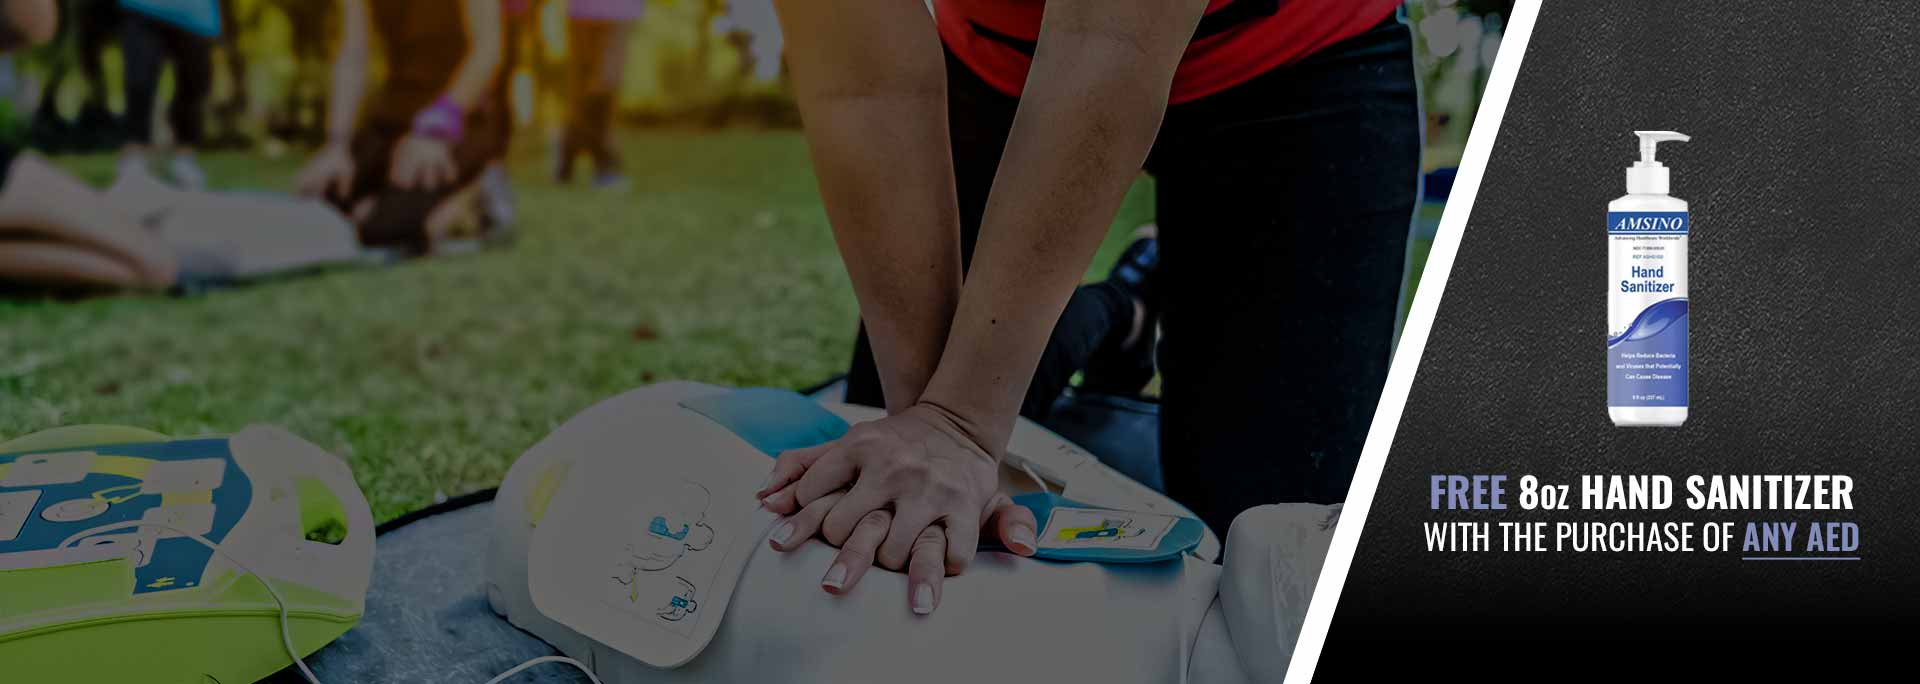 SUDDEN CARDIAC AWARENESS MONTH: Get 50% OFF CPR/AED Use Training with the Purchase of ANY AED